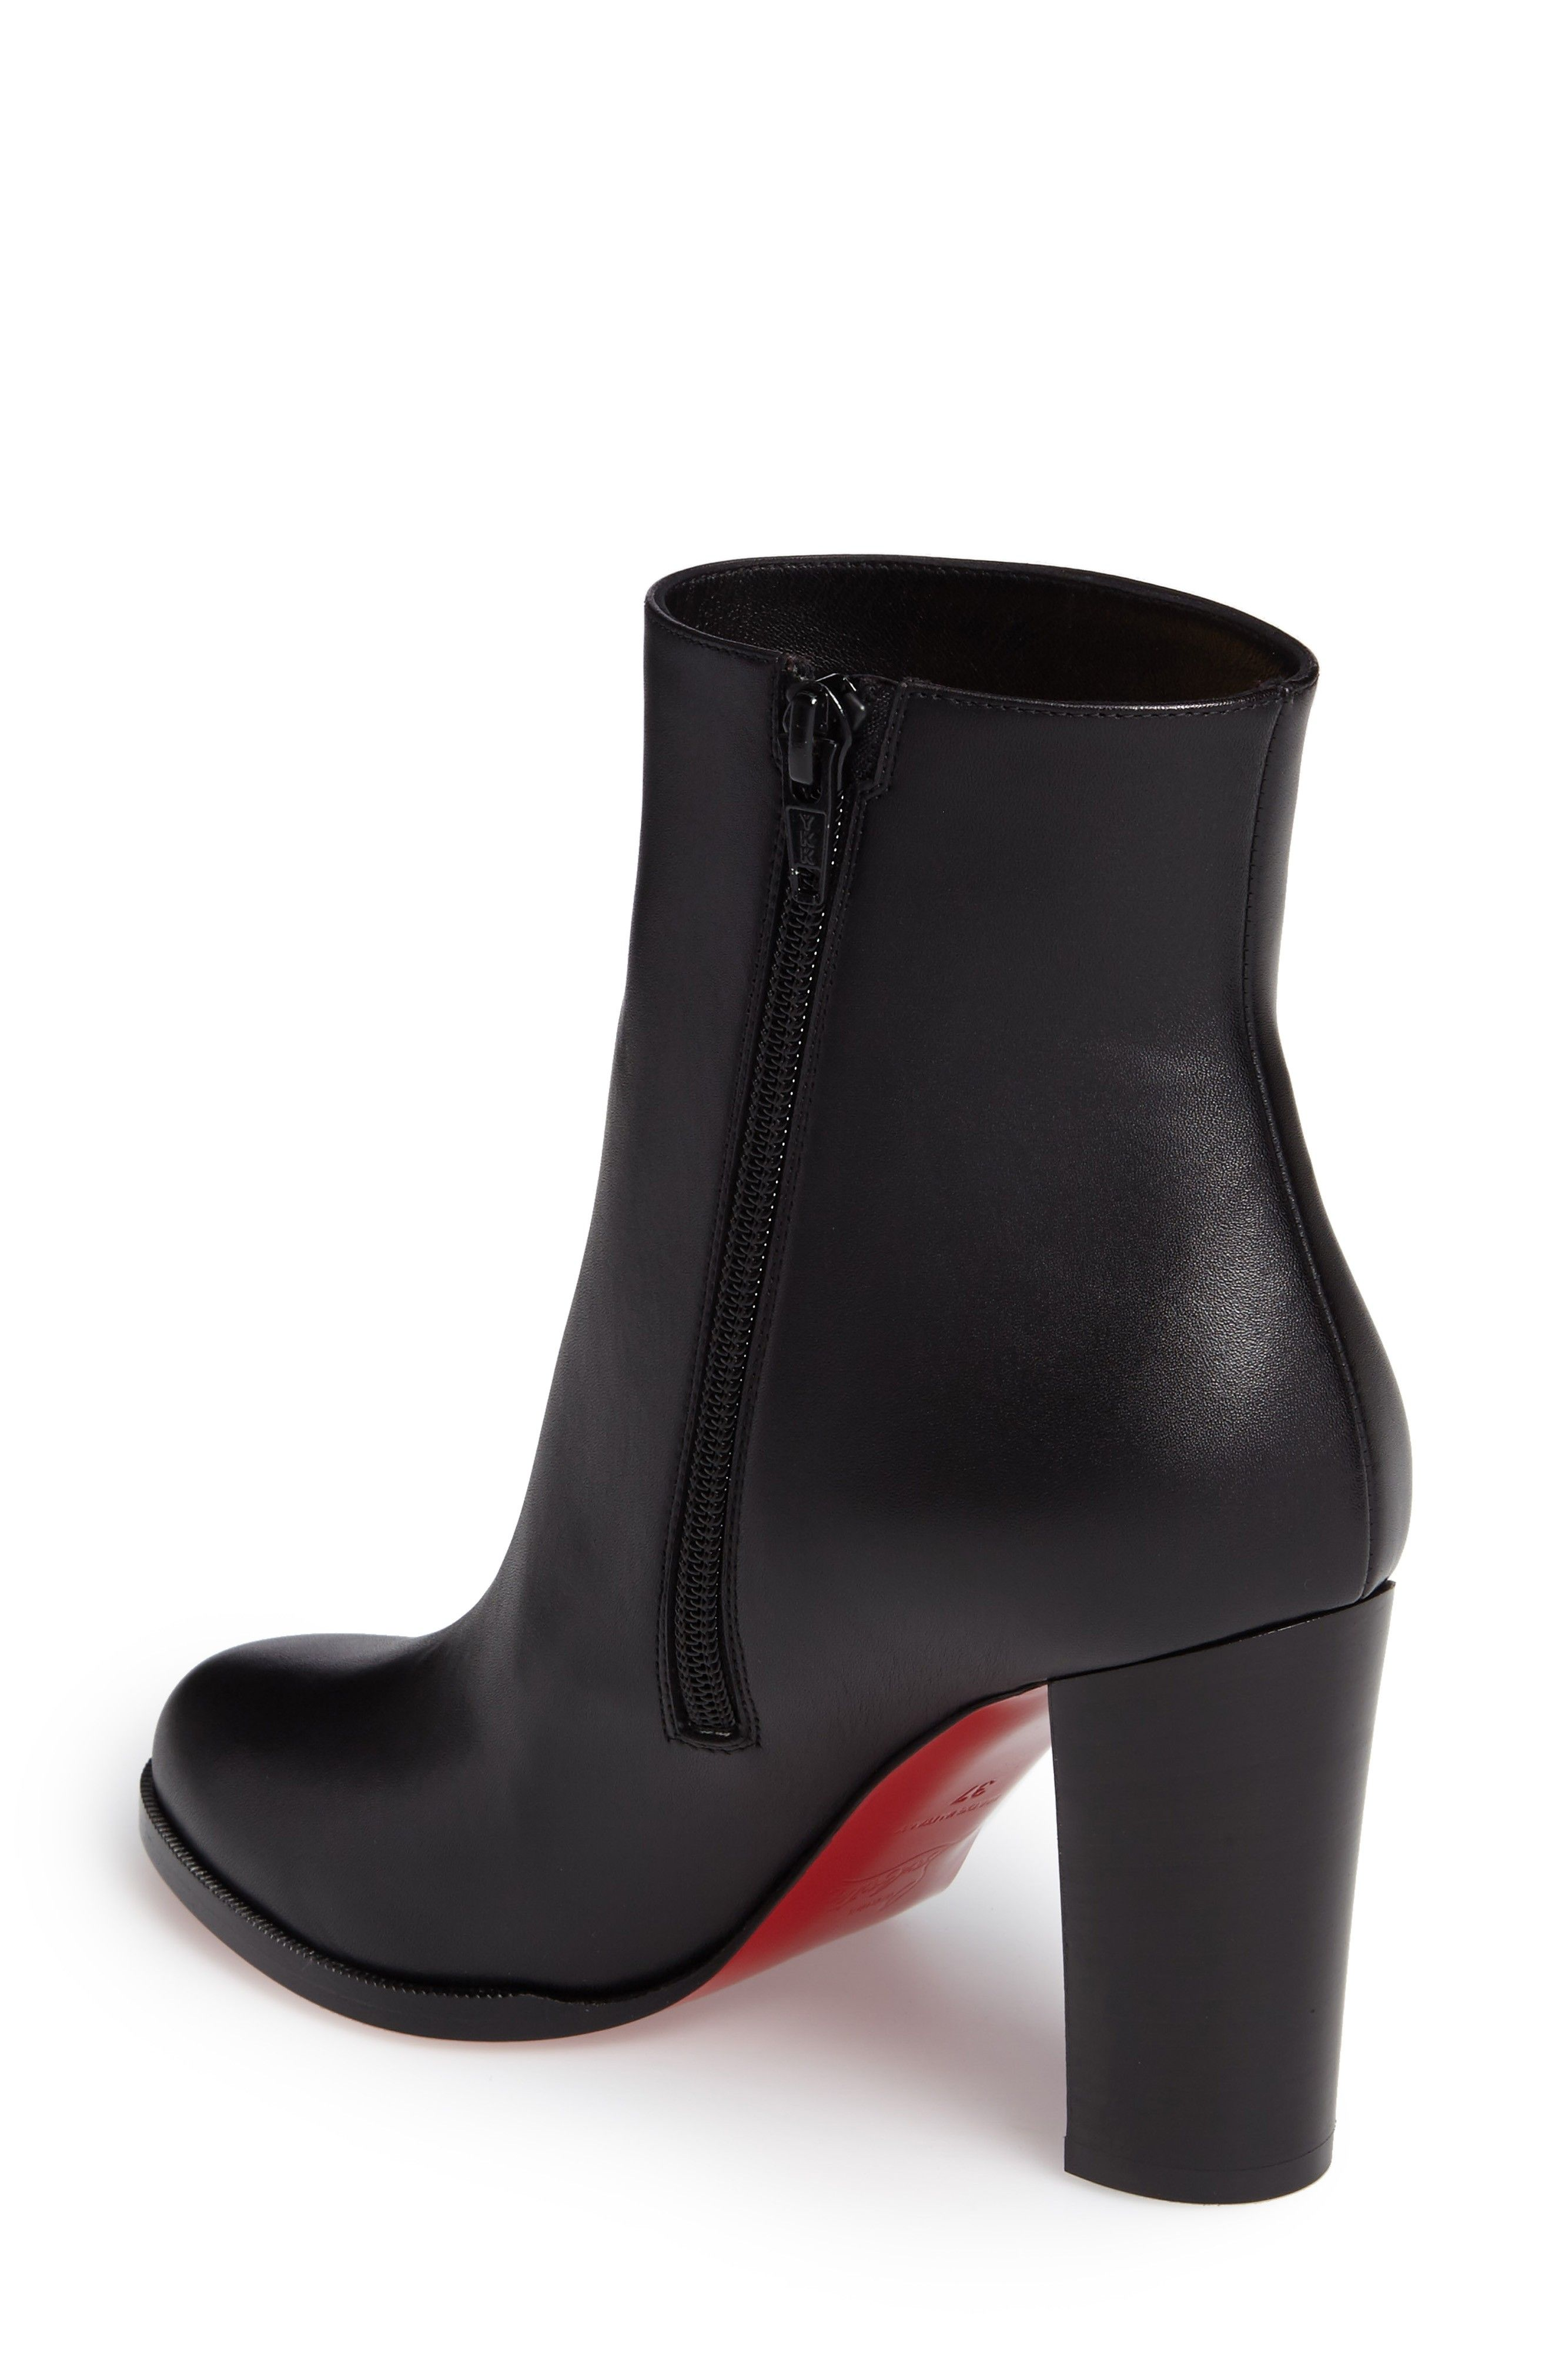 b9e0ea60486 CHRISTIAN LOUBOUTIN Adox Leather 85Mm Red Sole Ankle Boot